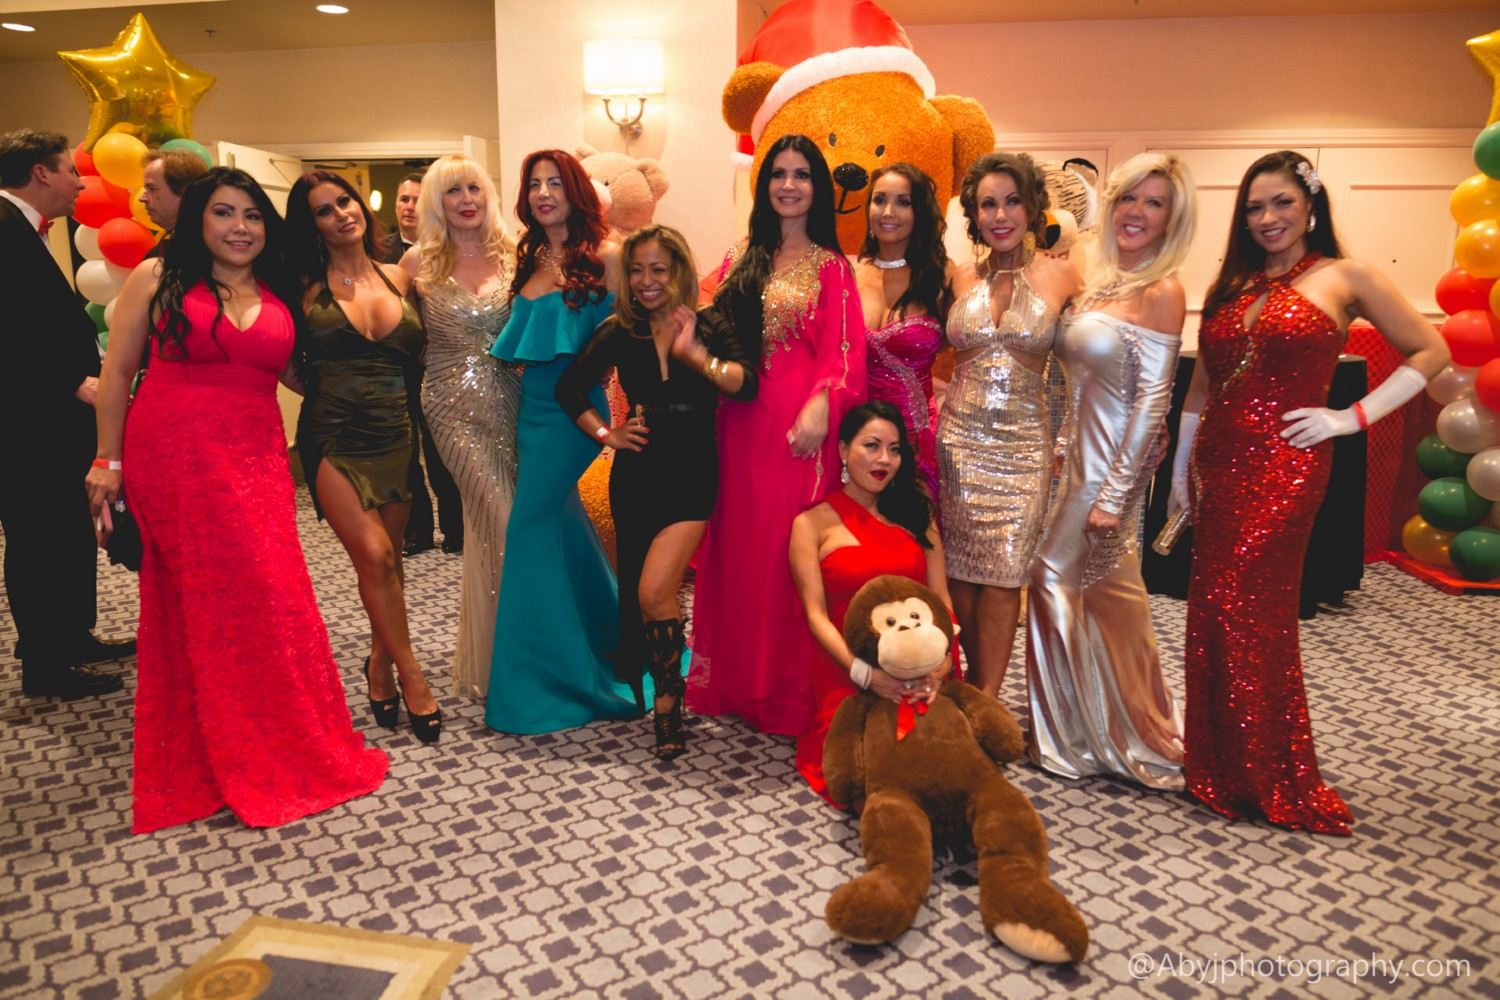 ABYJ_Photography_2016_Teddy_Ball - 336.jpg